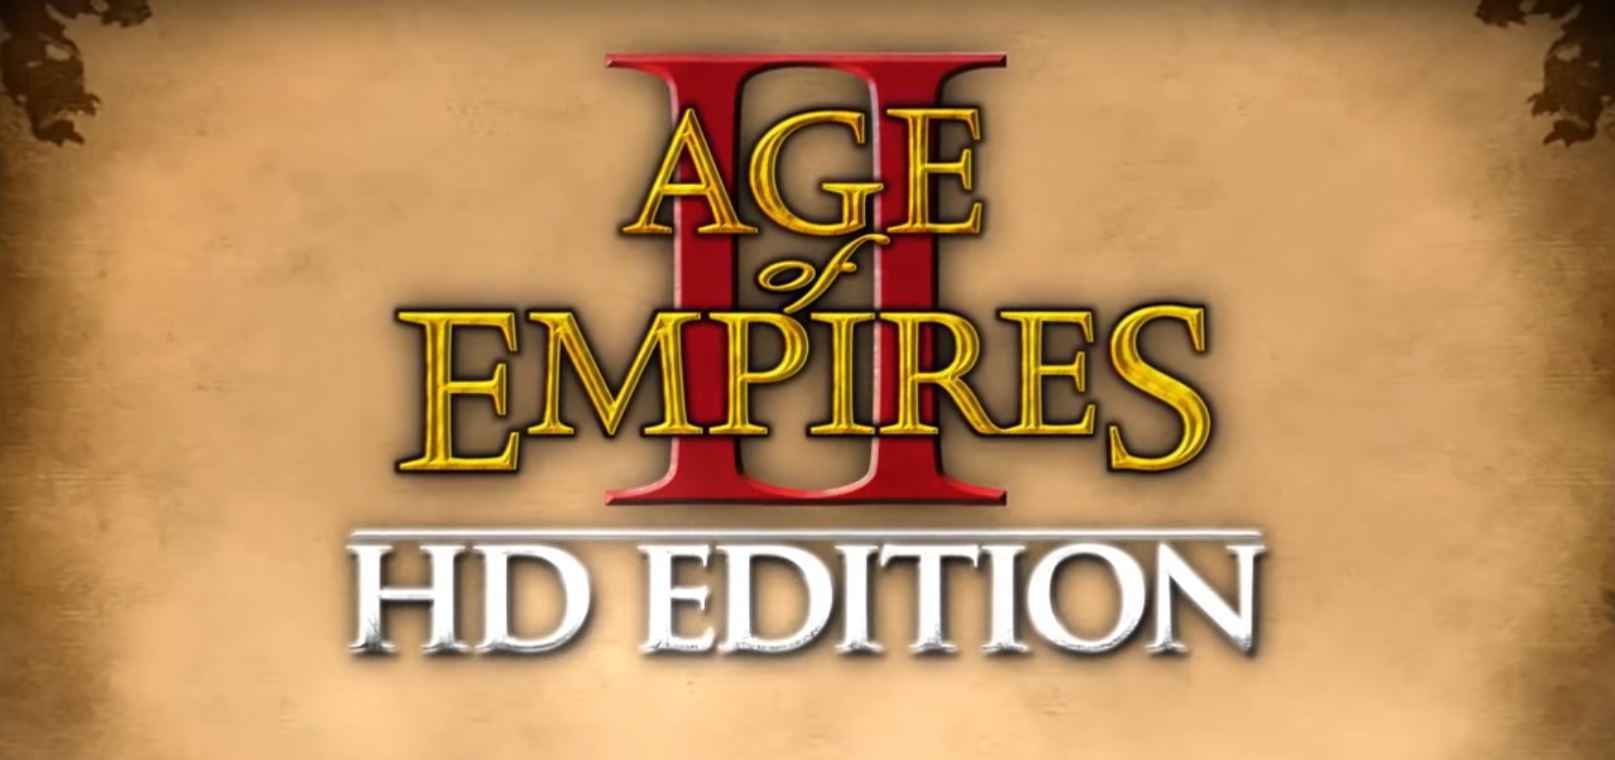 Age of Empires II: HD Edition Patch 5 2 With Balance Improvements